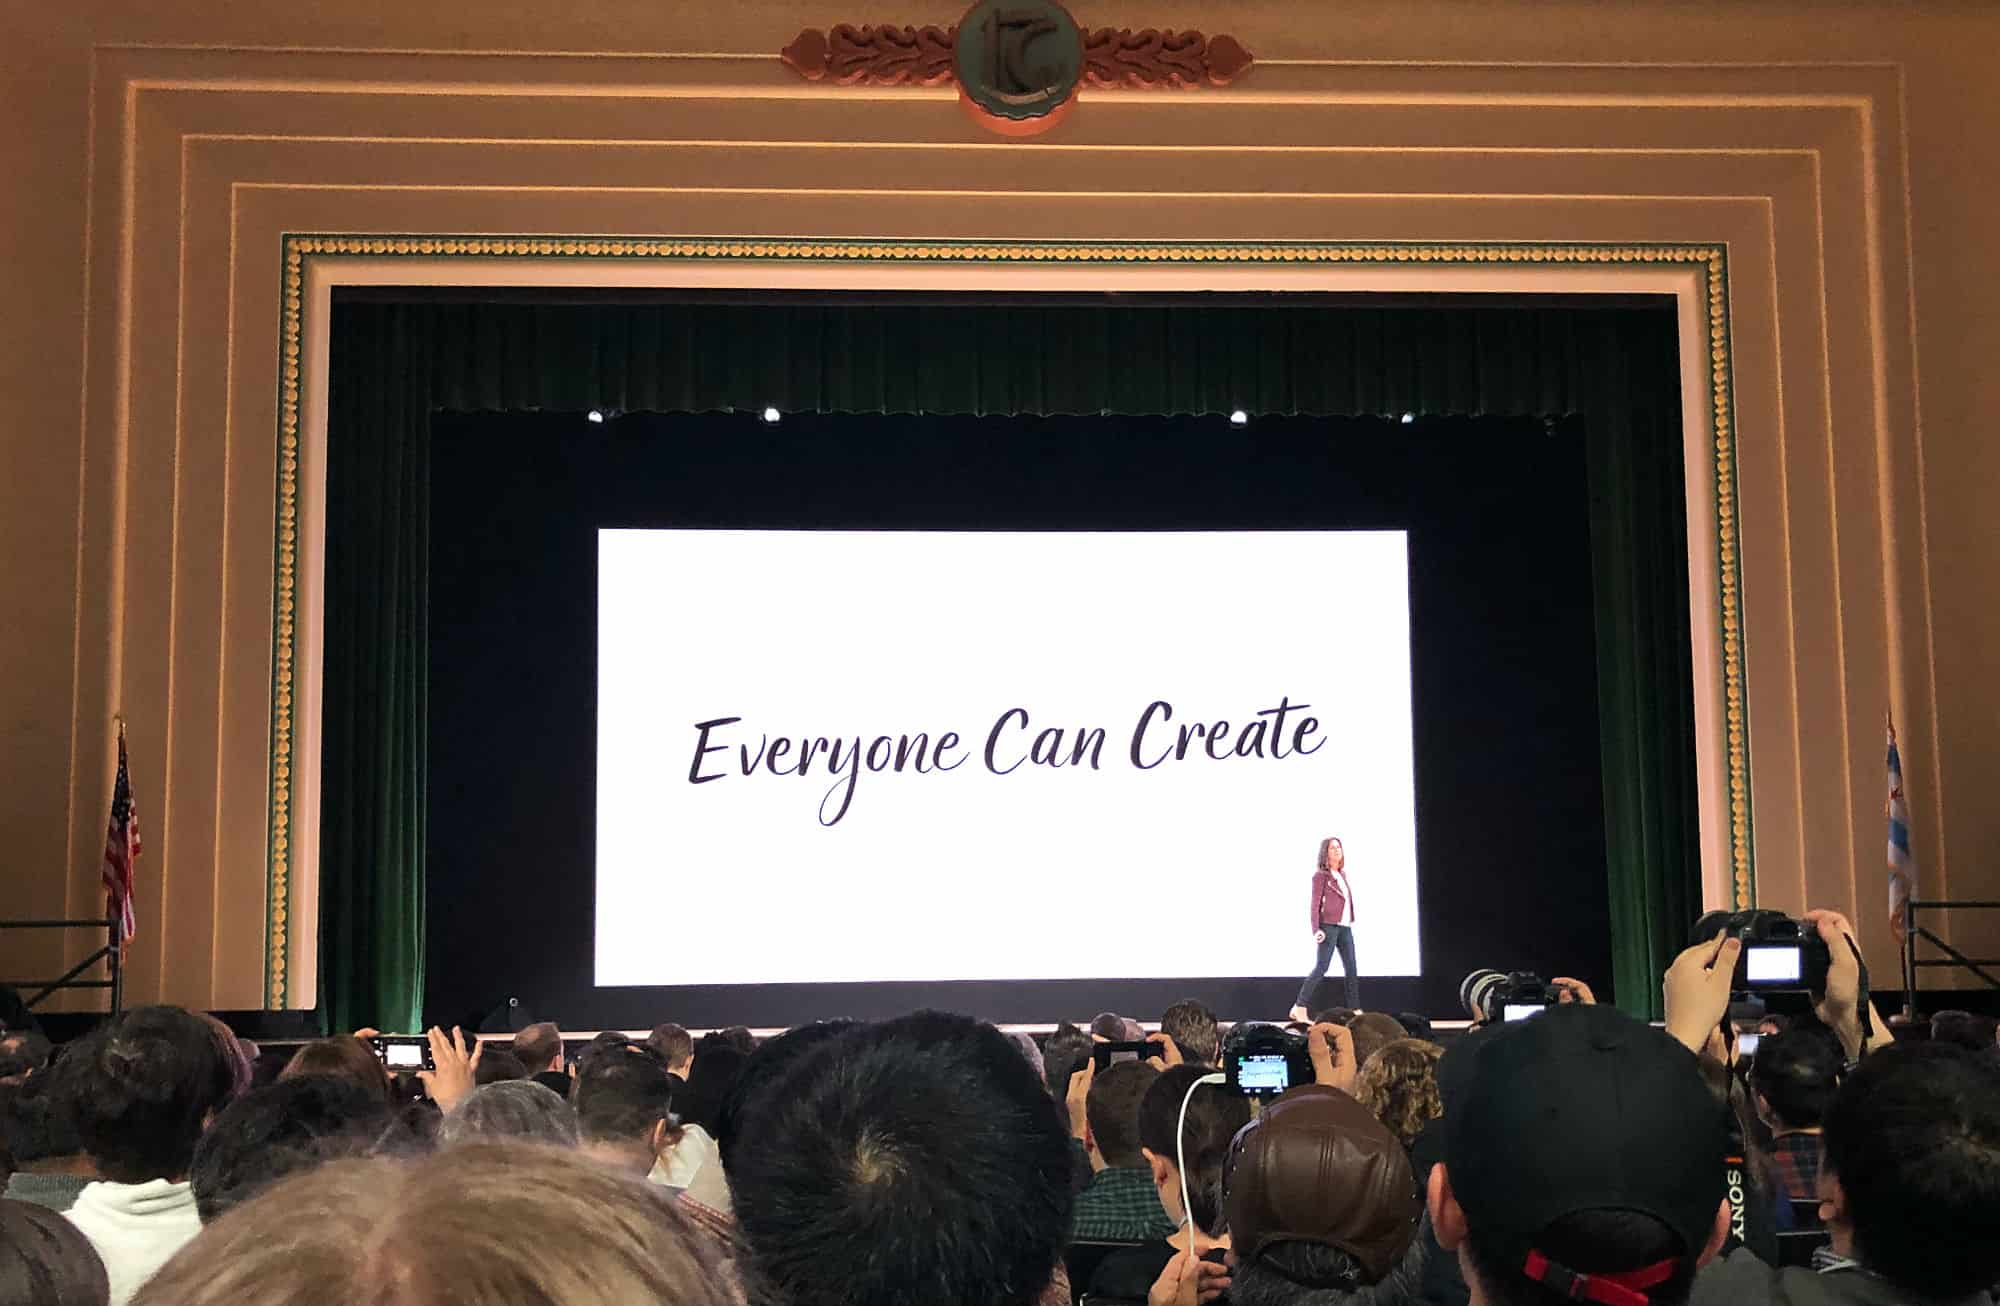 Apple rolls out its Everyone Can Create curriculum at its iPad event on March 27, 2018.